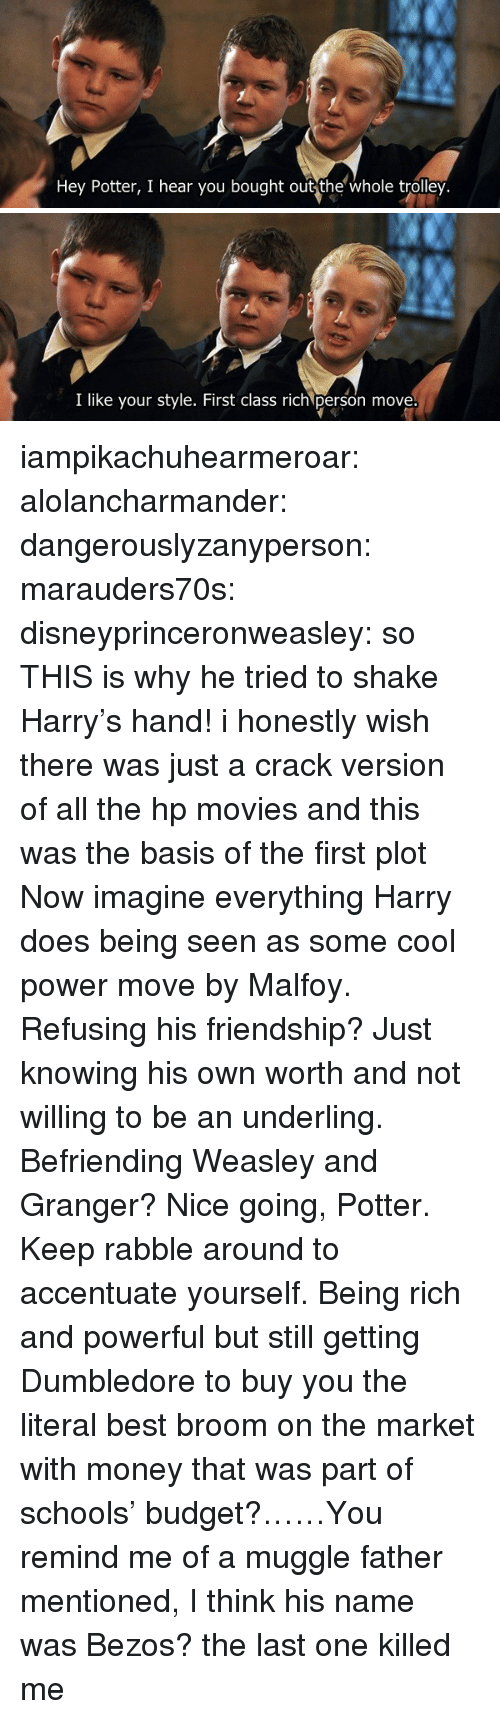 Being Rich, Dumbledore, and Money: Hey Potter, I hear you bought out the whole trolley.   I like your style. First class rich person move iampikachuhearmeroar: alolancharmander:  dangerouslyzanyperson:  marauders70s:  disneyprinceronweasley: so THIS is why he tried to shake Harry's hand! i honestly wish there was just a crack version of all the hp movies and this was the basis of the first plot   Now imagine everything Harry does being seen as some cool power move by Malfoy. Refusing his friendship? Just knowing his own worth and not willing to be an underling. Befriending Weasley and Granger? Nice going, Potter. Keep rabble around to accentuate yourself.  Being rich and powerful but still getting Dumbledore to buy you the literal best broom on the market with money that was part of schools' budget?……You remind me of a muggle father mentioned, I think his name was Bezos?   the last one killed me